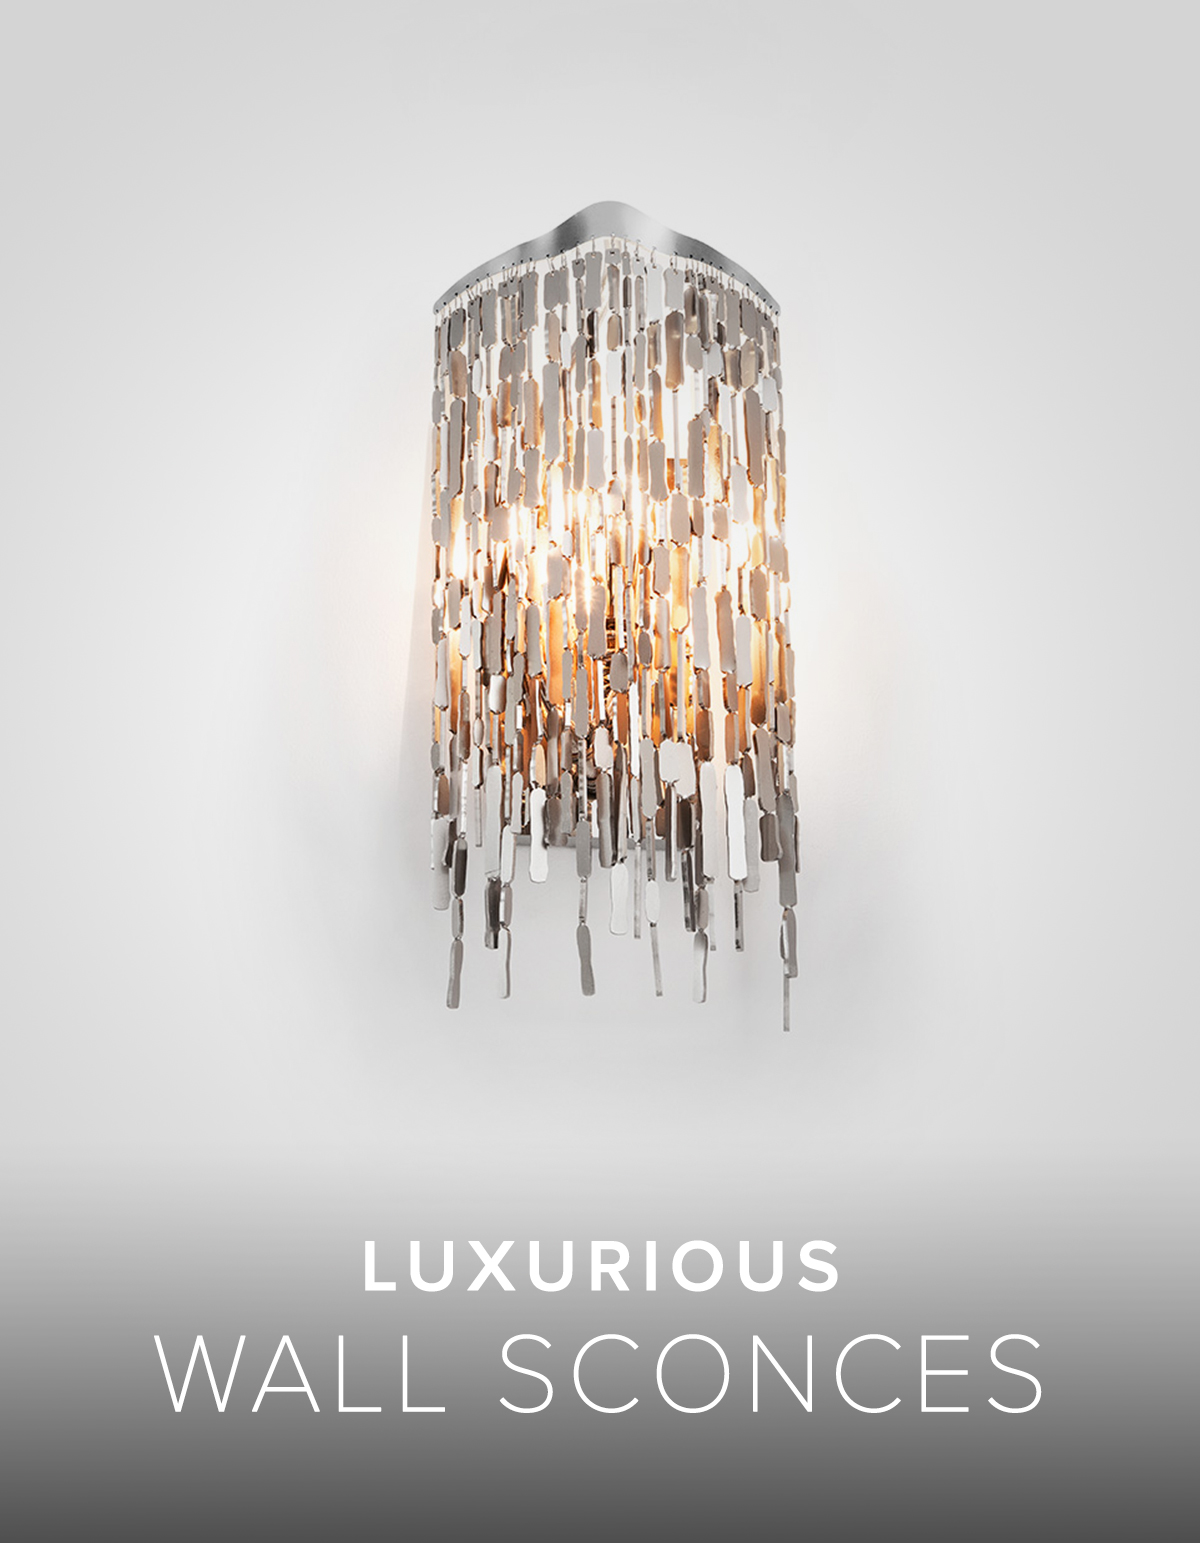 Luxurious Wall Sconces